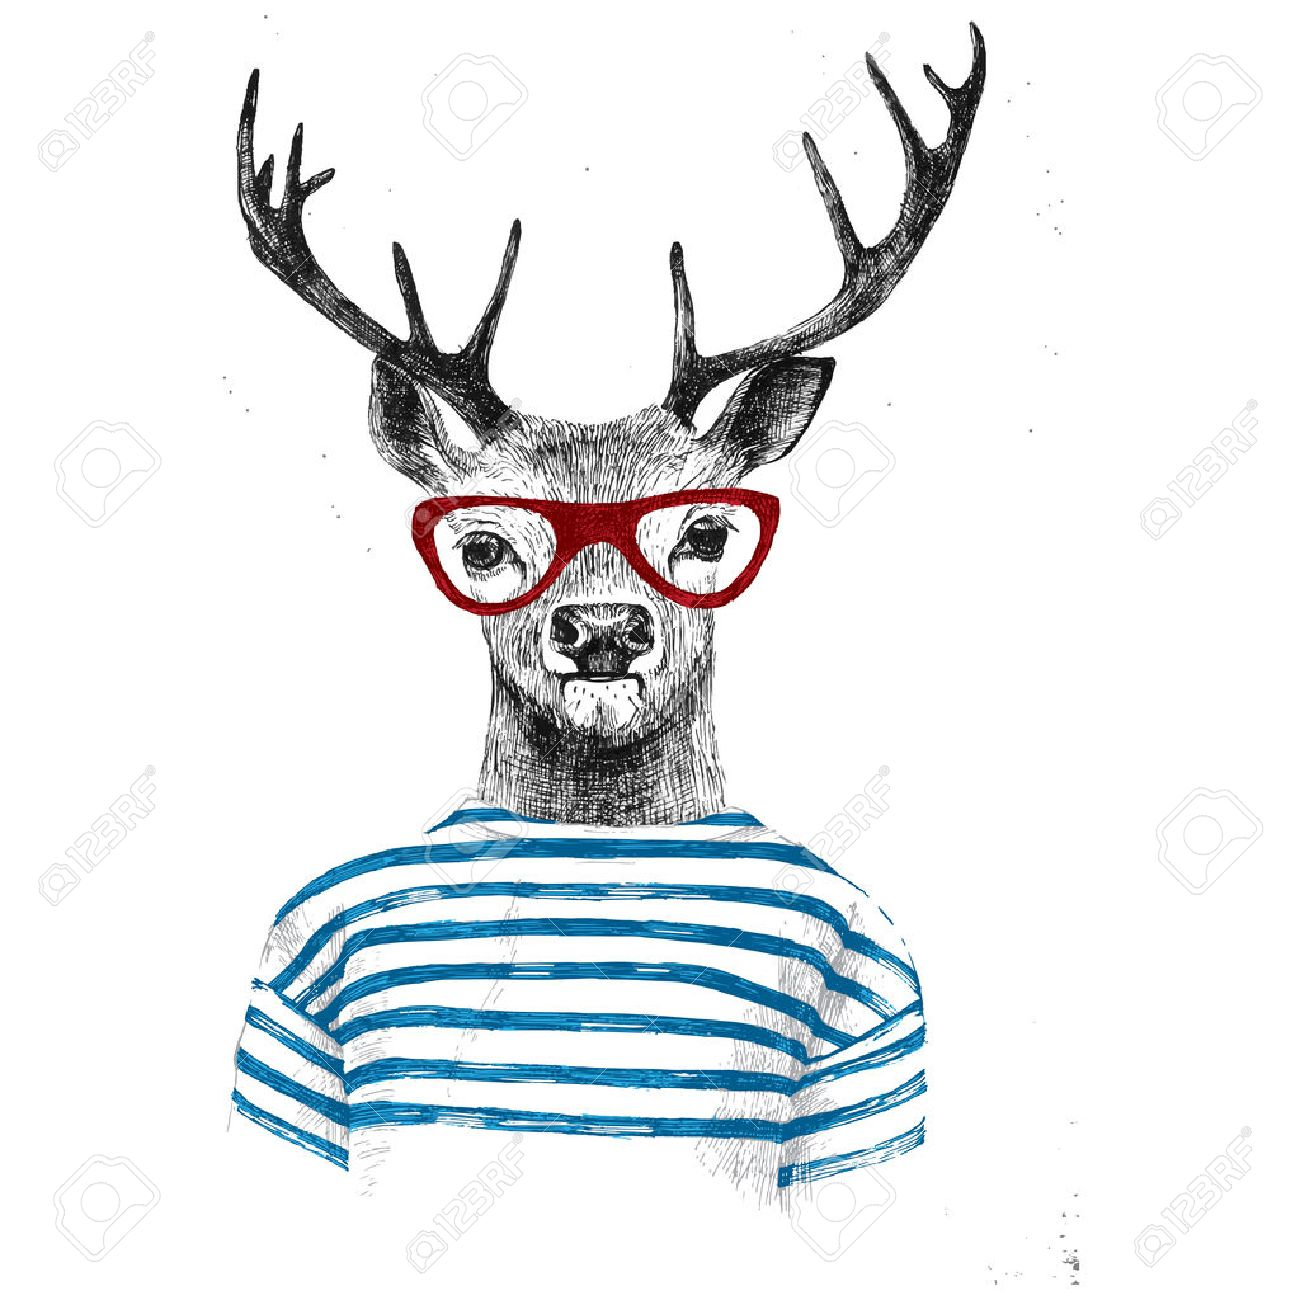 Hand drawn dressed up deer in hipster style - 55367714